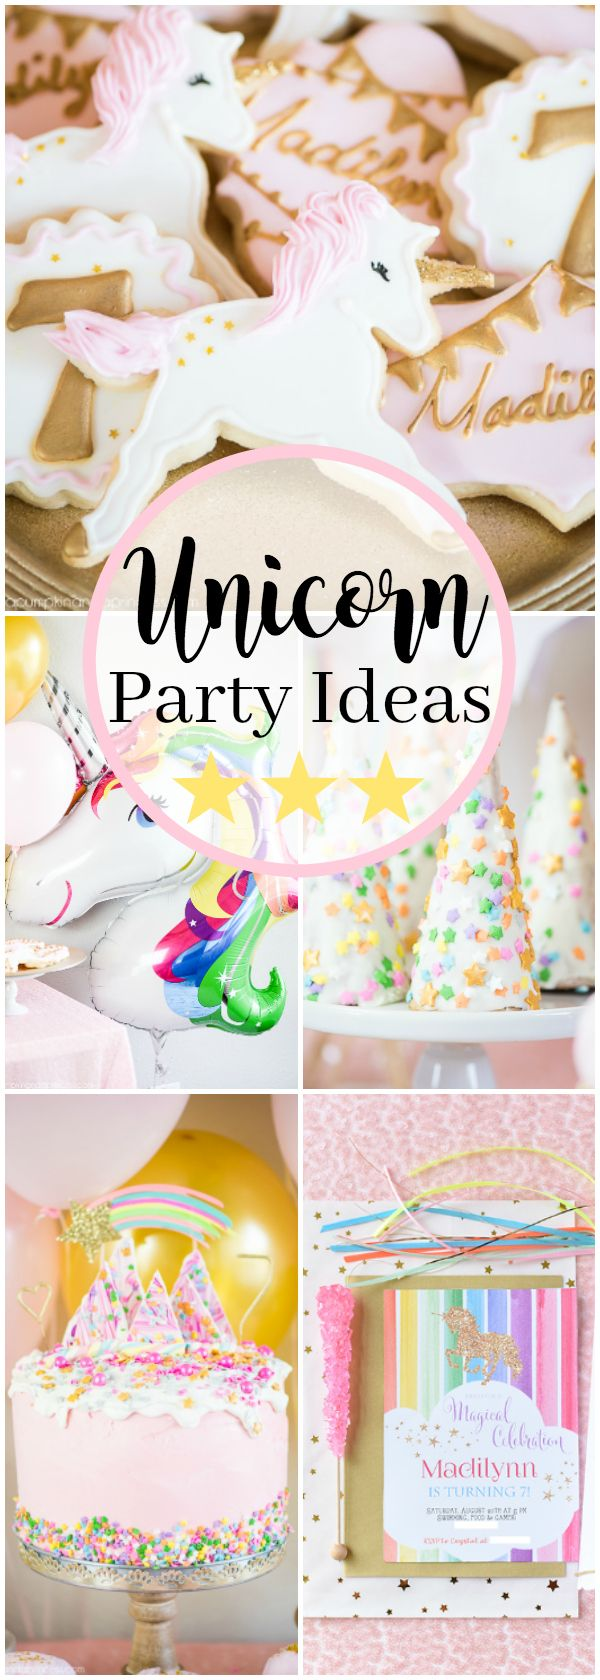 Shimmery pink and gold Unicorn Birthday Party – unicorn party ideas, food and decorations.